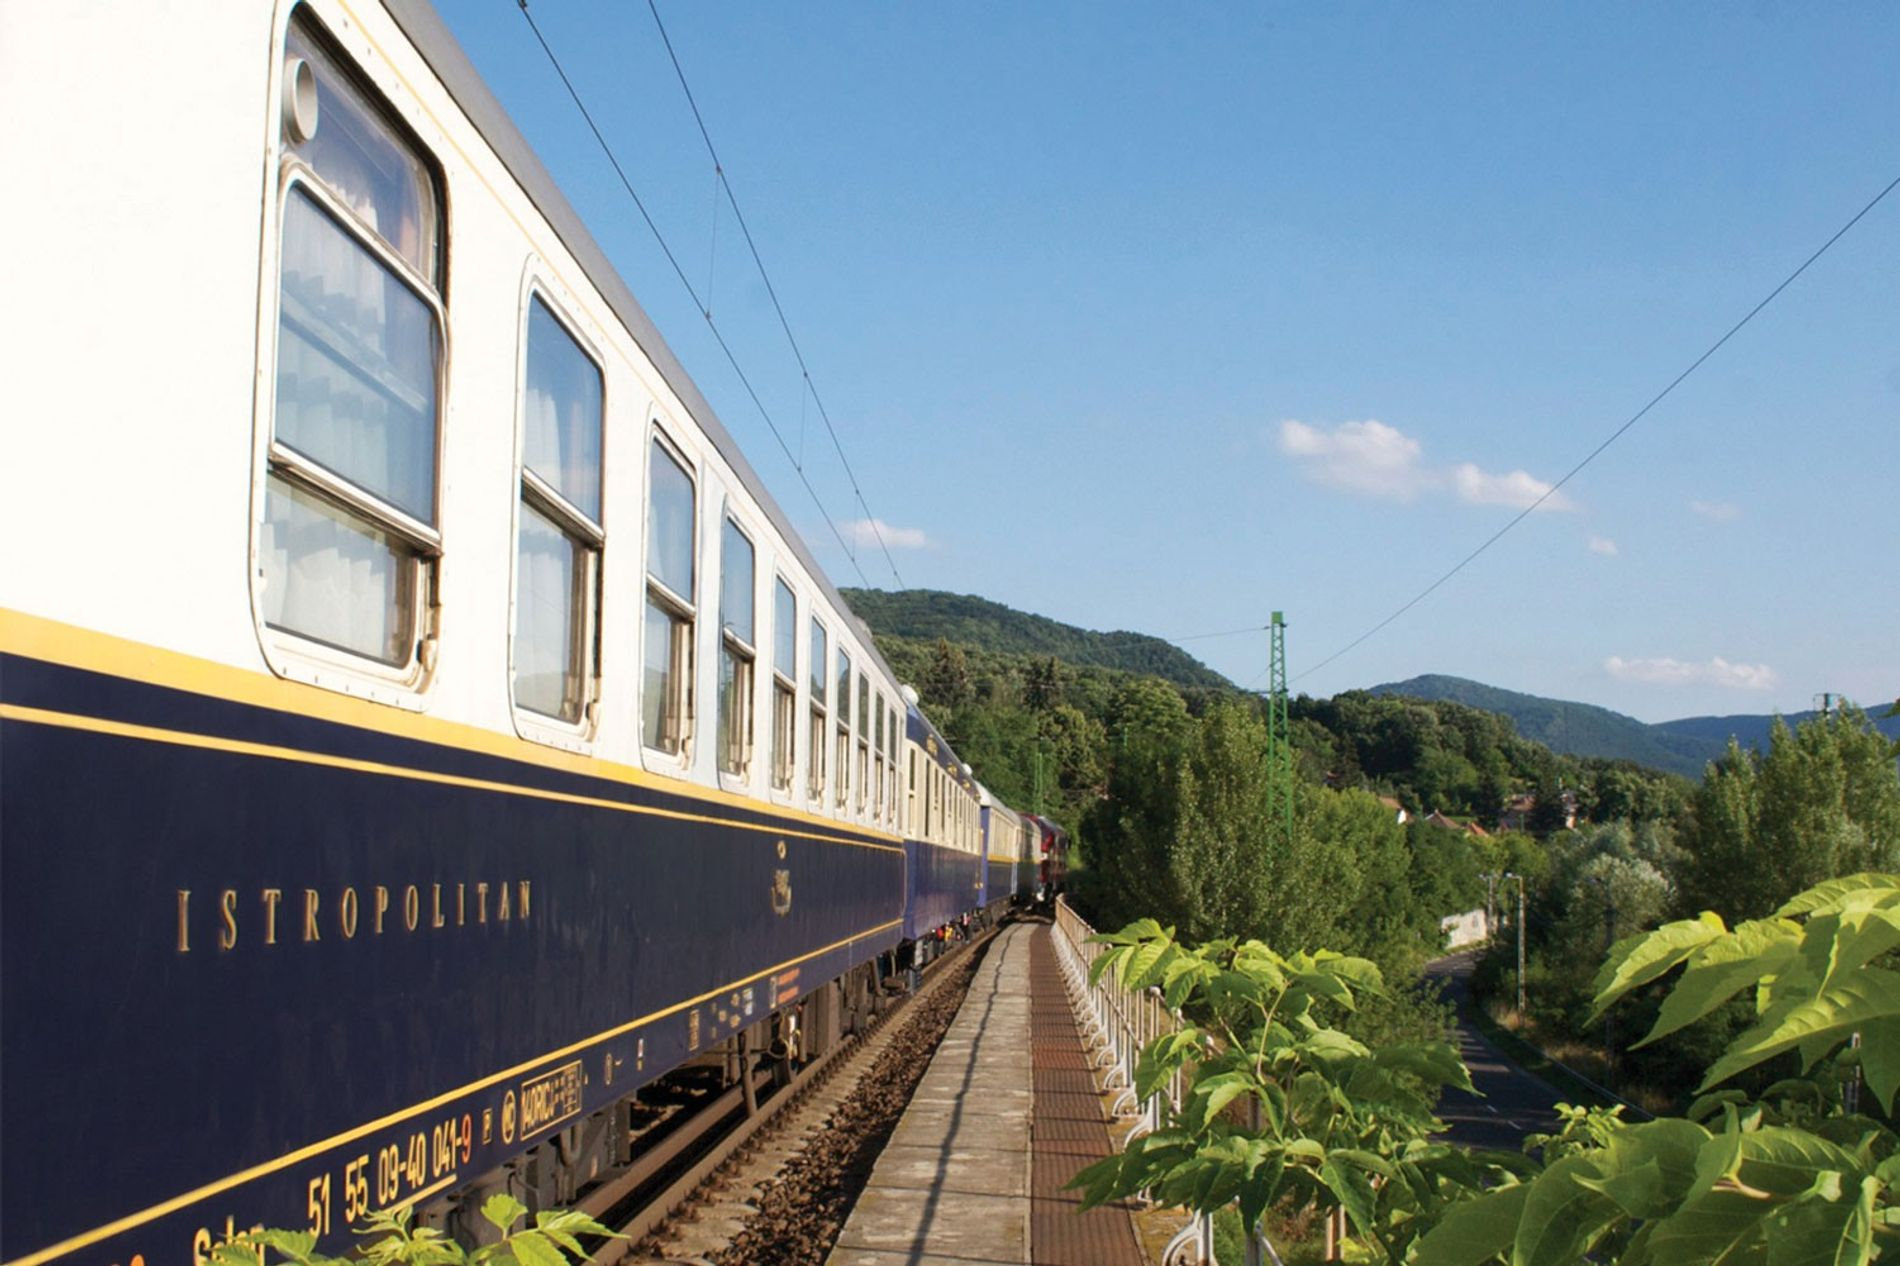 The Danube Express